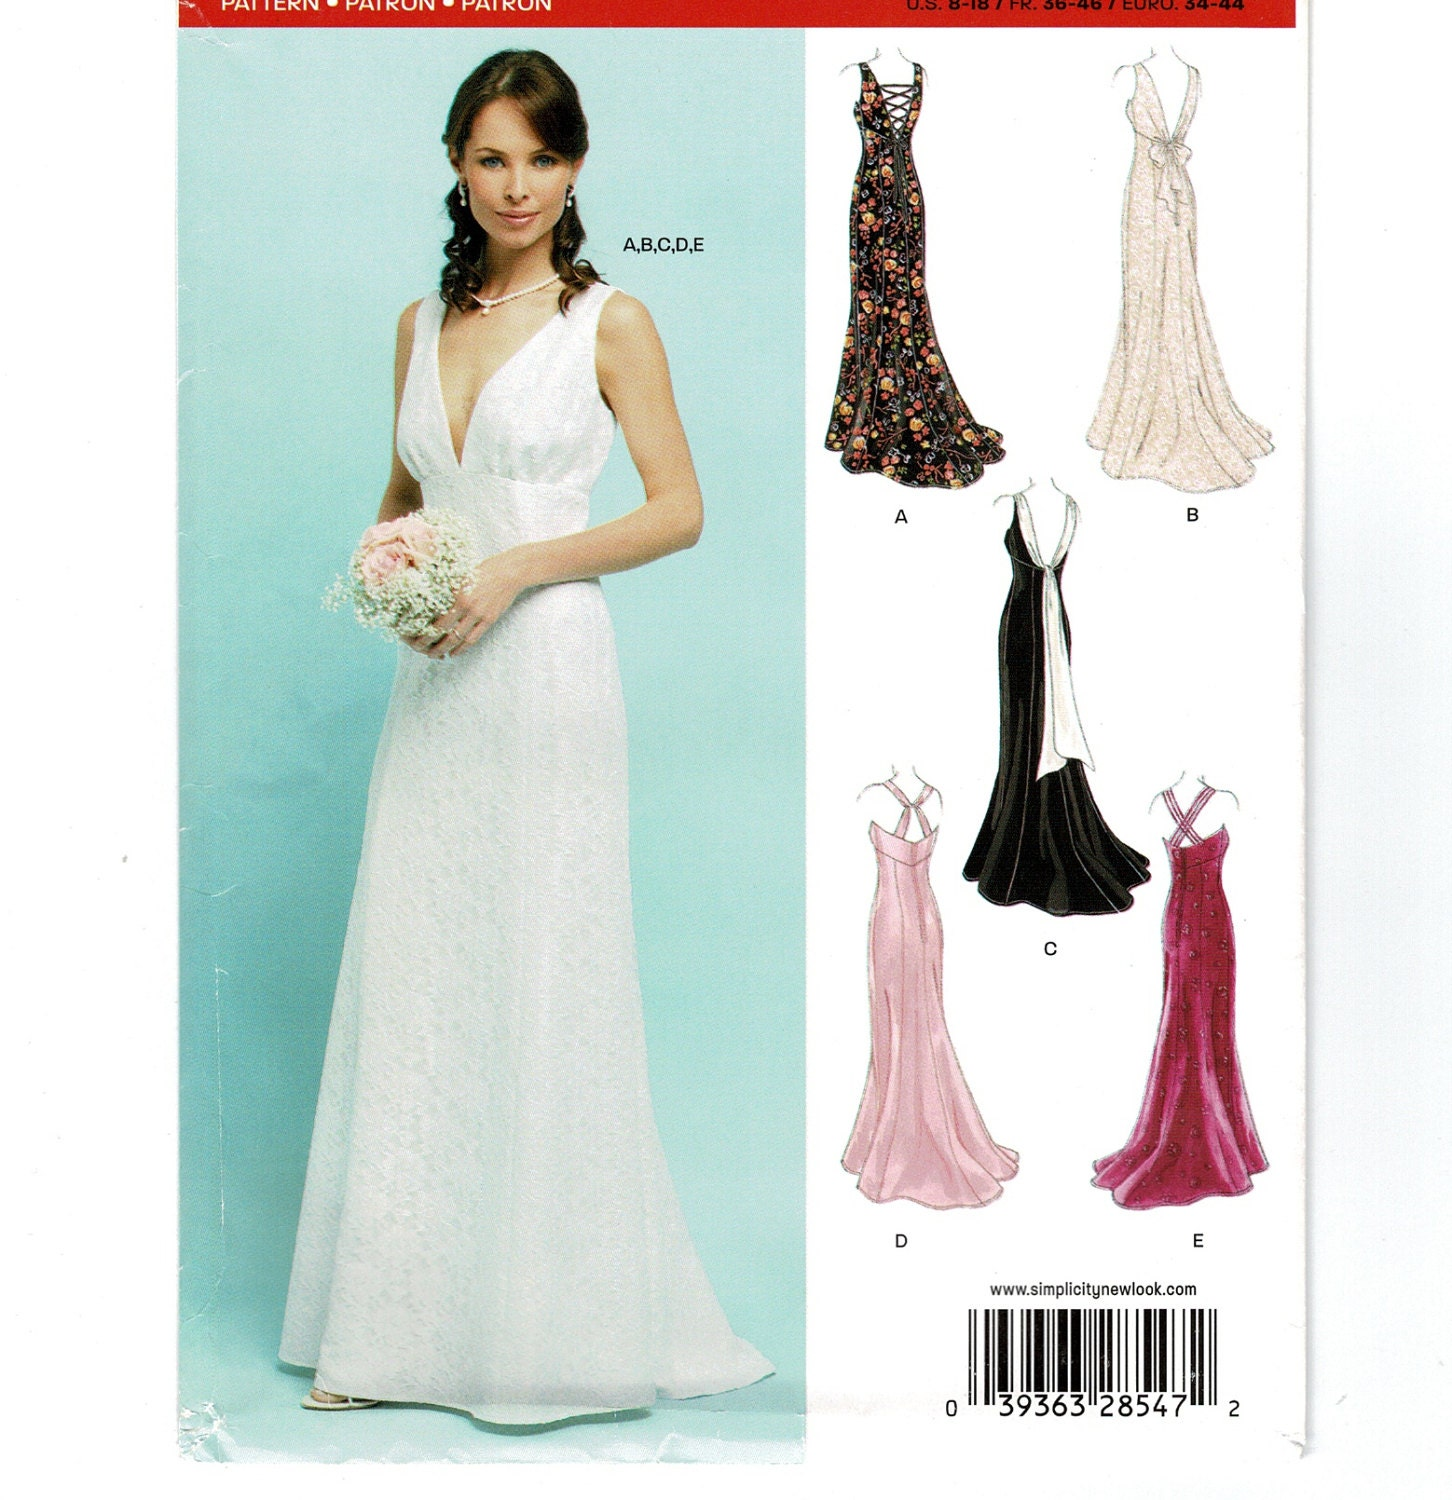 New Look 6401 Bride\'s Formal Dress Sewing Pattern, Sleeveless ...